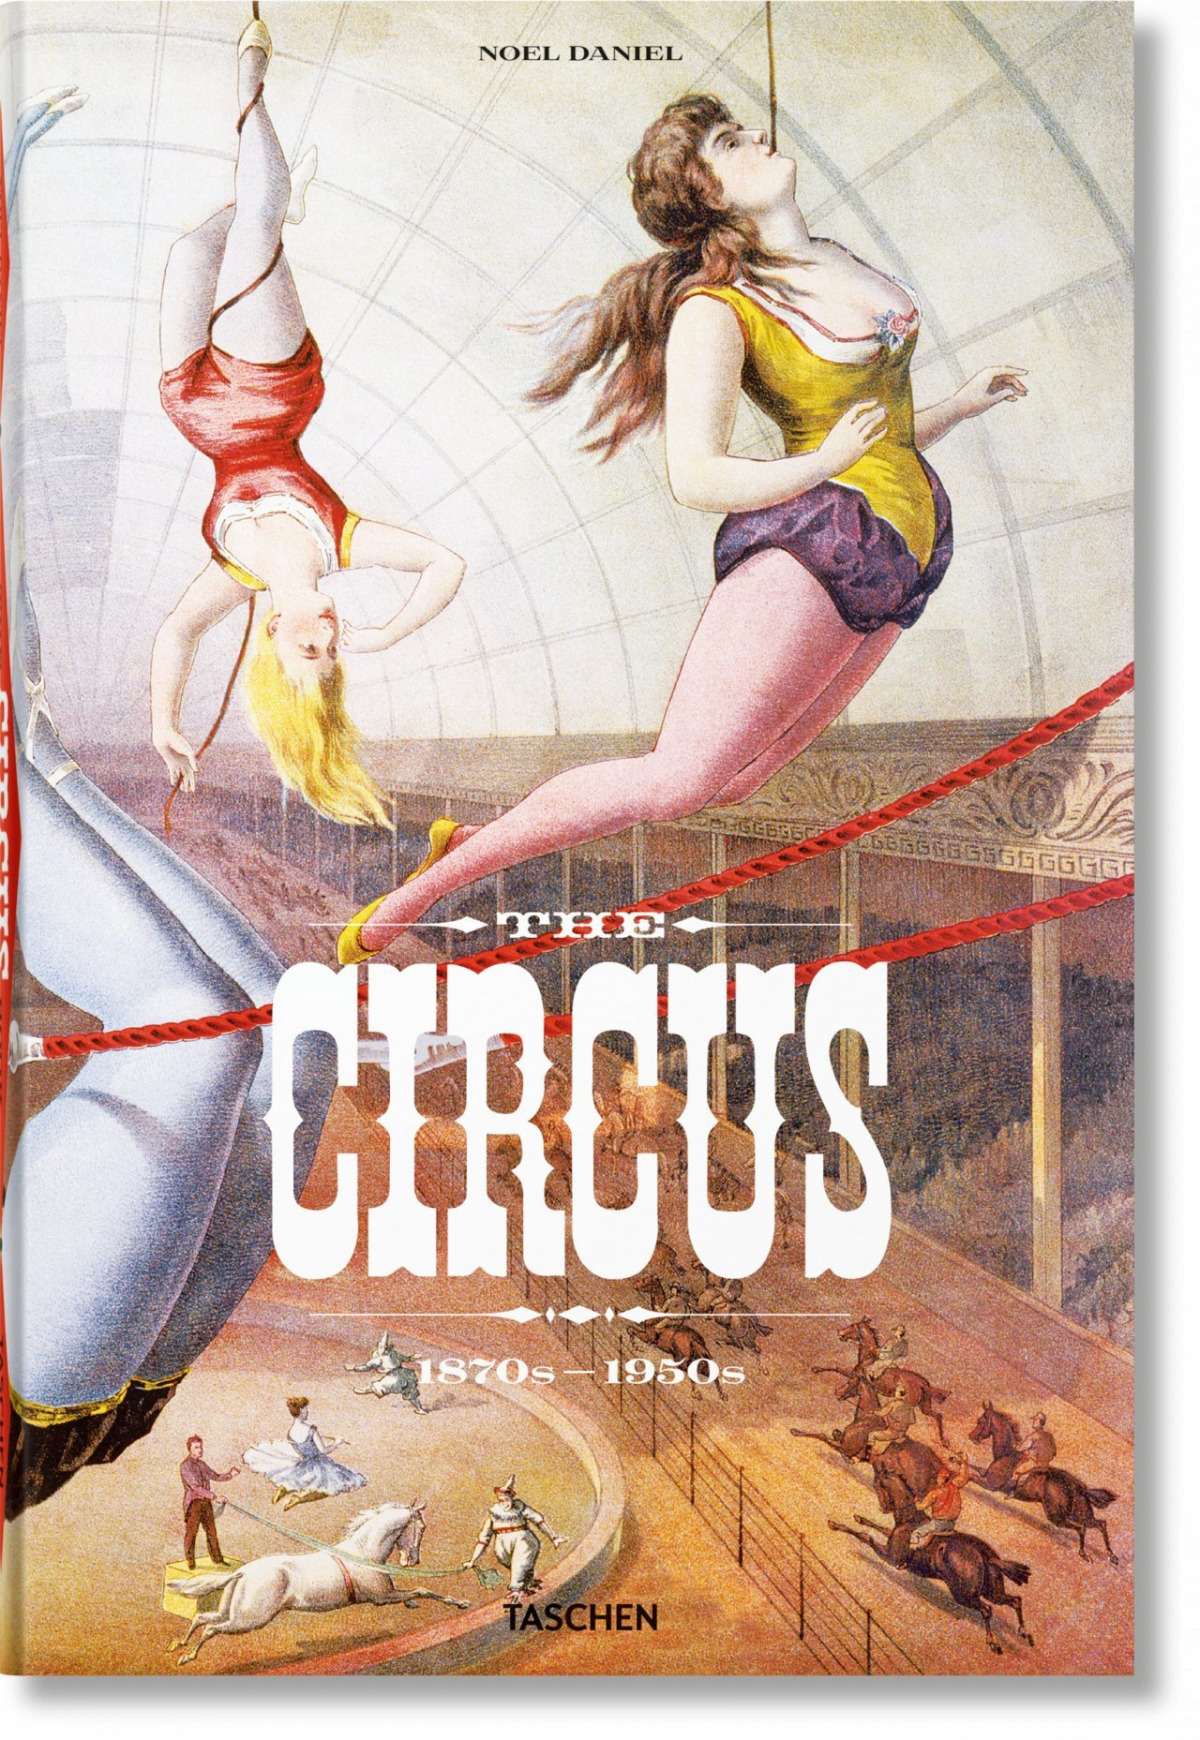 The Circus. 1870s?1950s